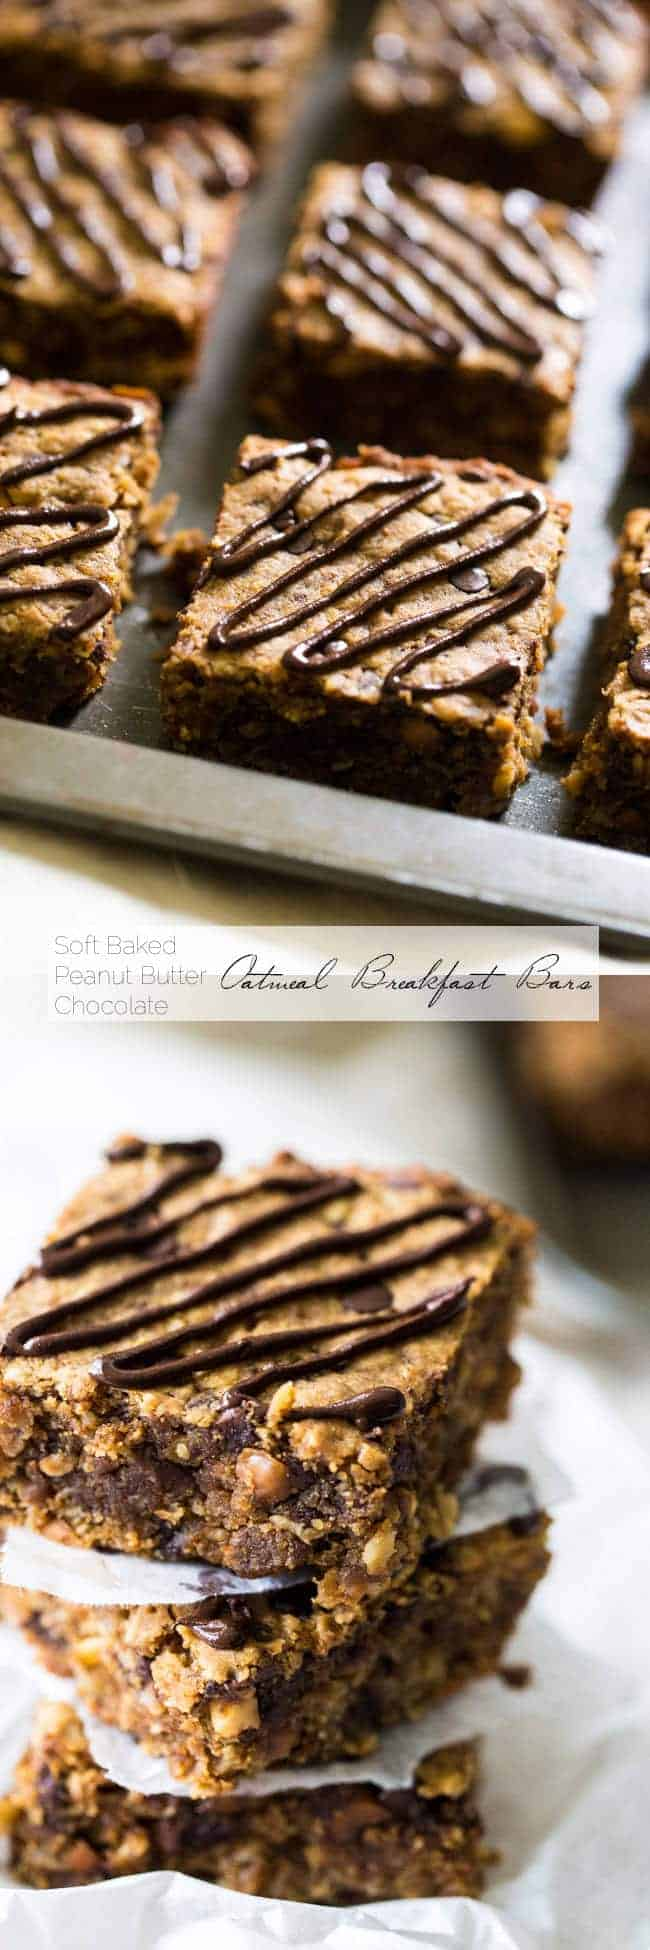 Chocolate Peanut Butter Oatmeal Breakfast Bars - Tastes like store bought but are high protein, gluten free and have no refined sugar, butter or oil!   Foodfaithfitness.com   @FoodFaithFit